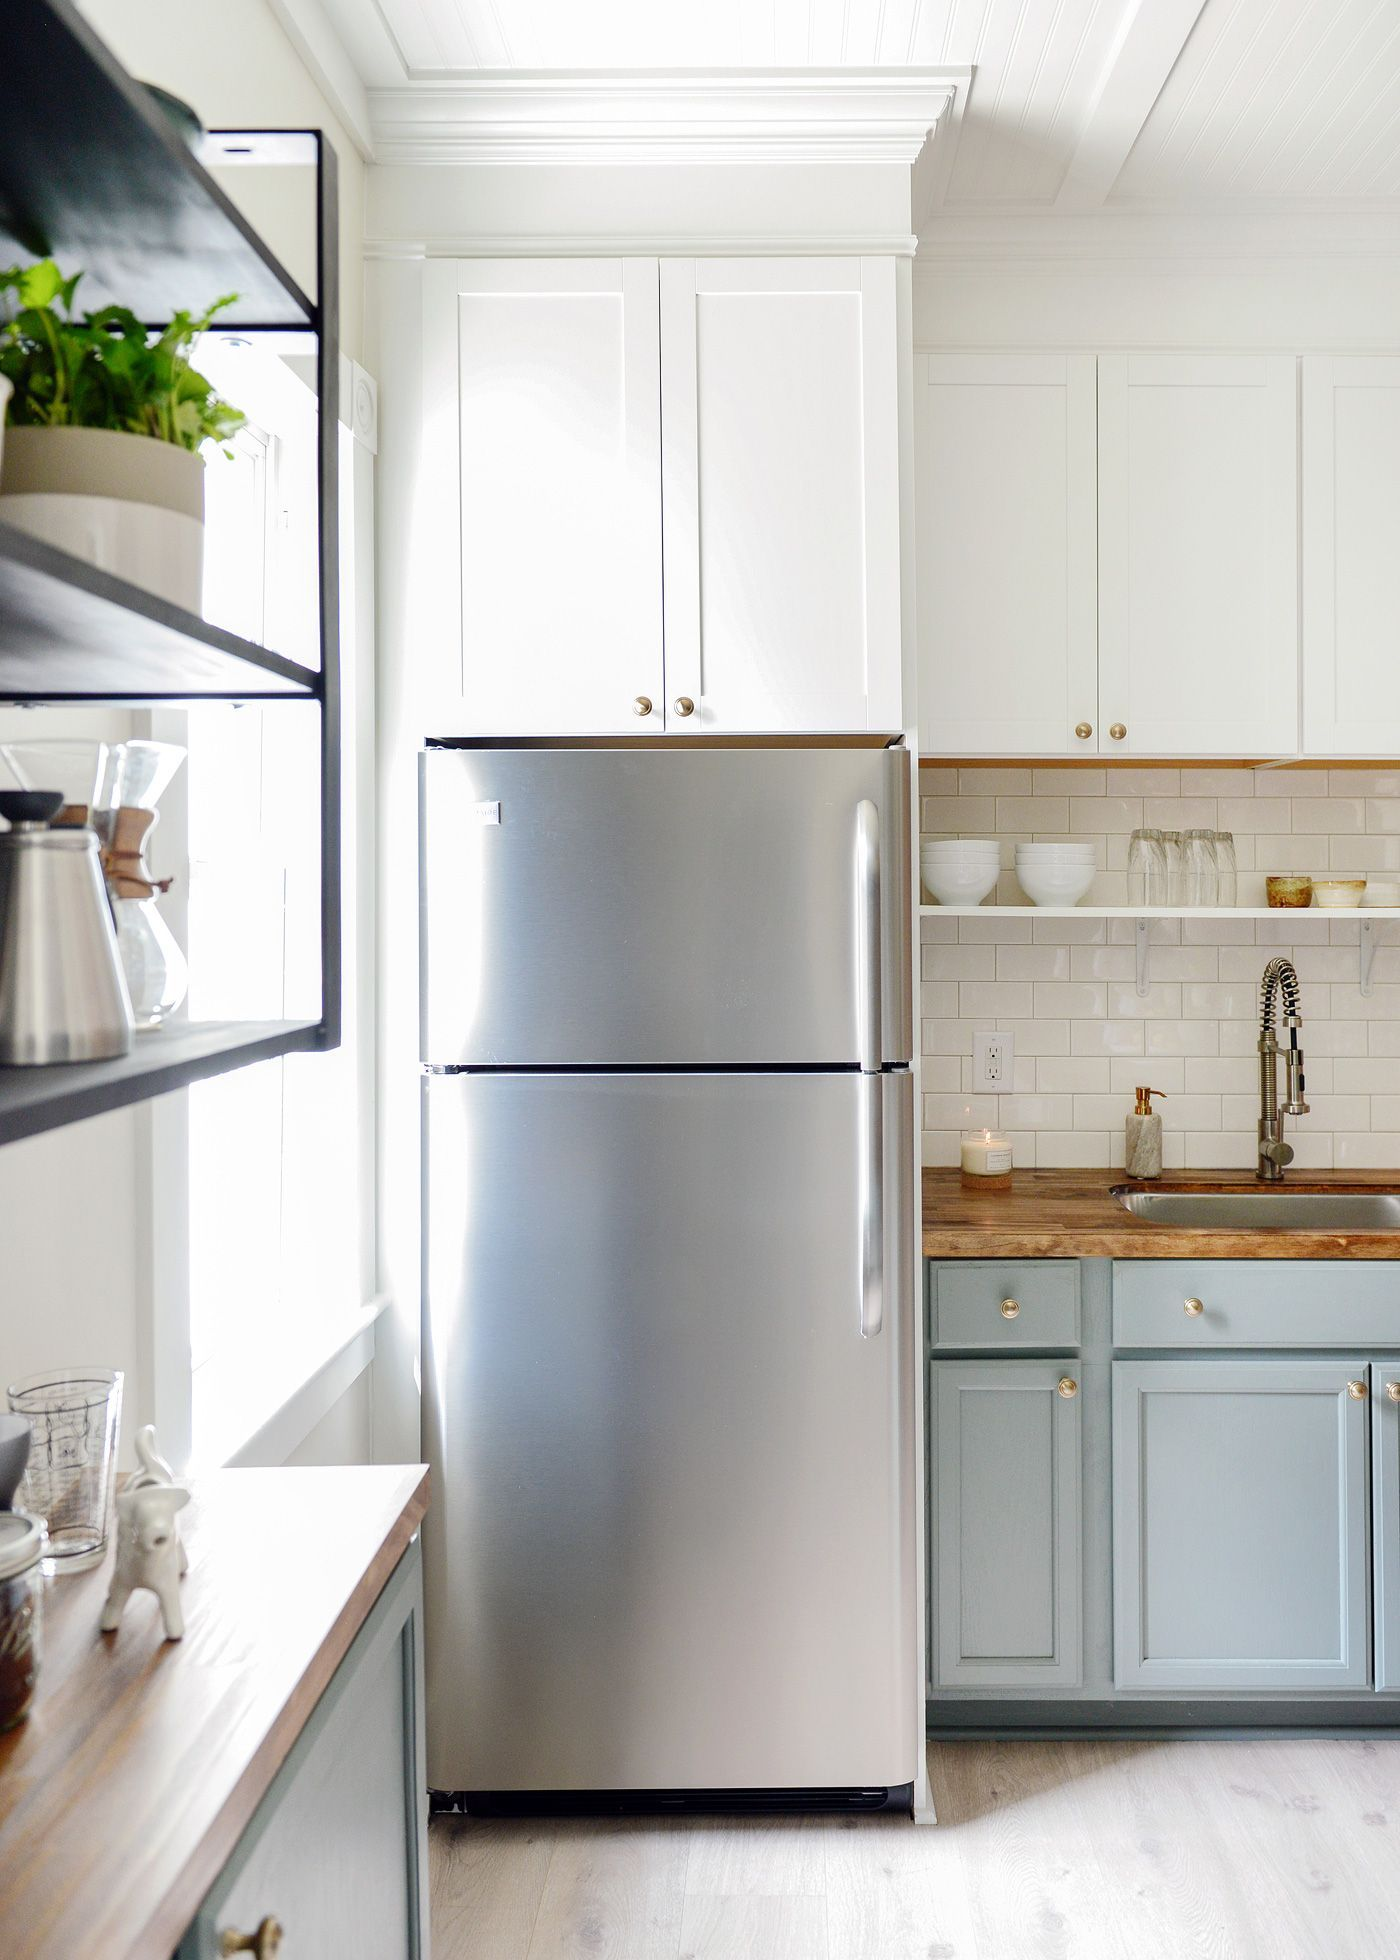 Best Lowe's Has In Stock Cabinets In A Variety Of Sizes Depths 400 x 300